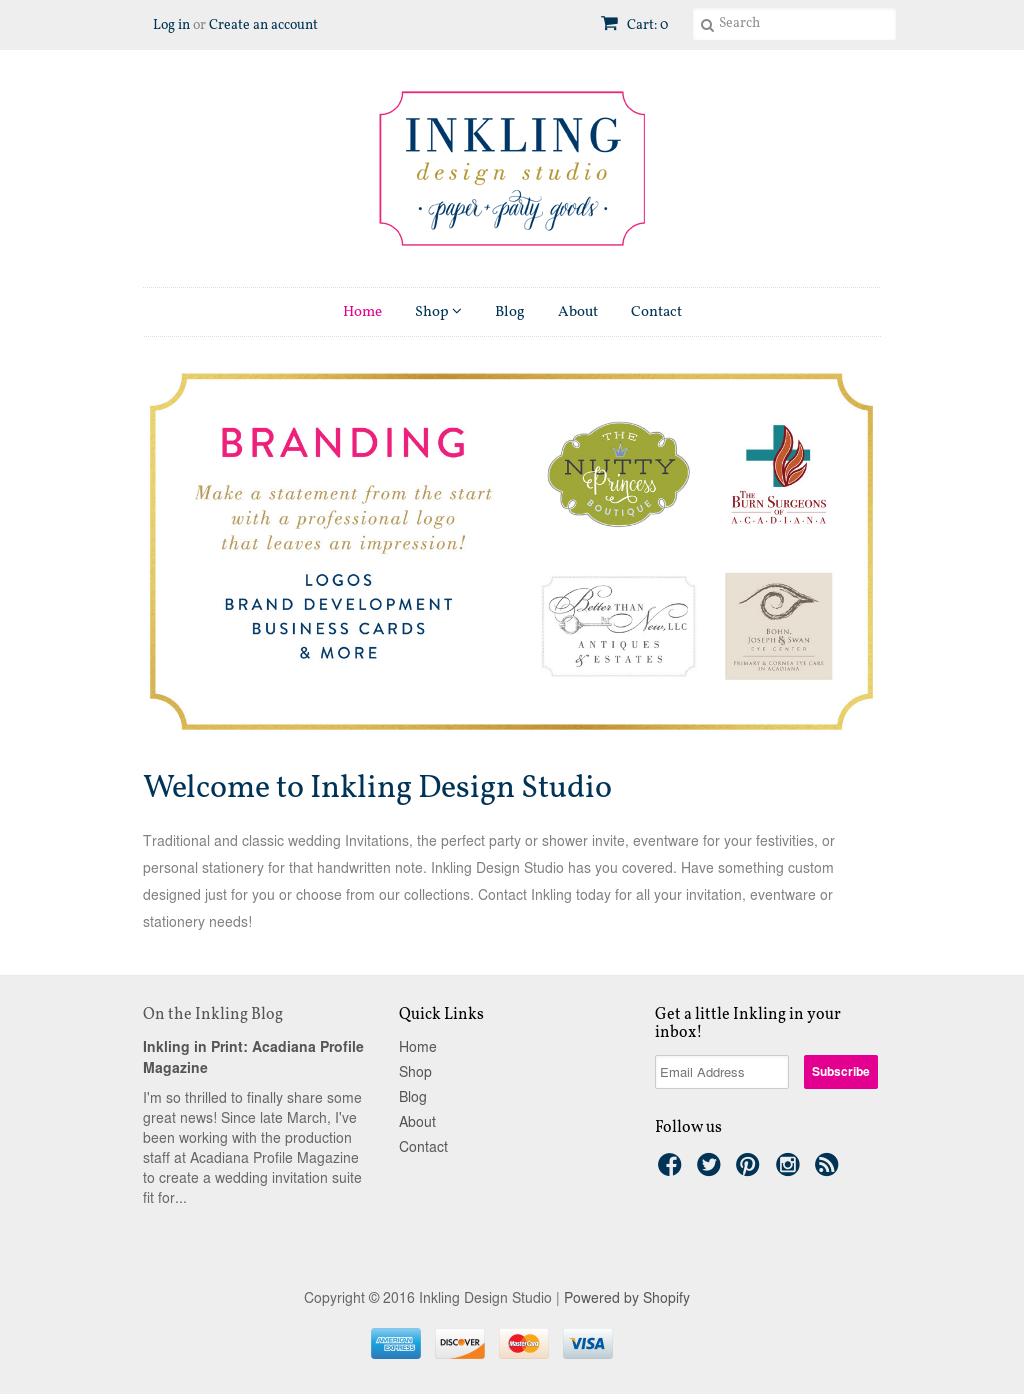 Inkling Design Studio Competitors, Revenue and Employees